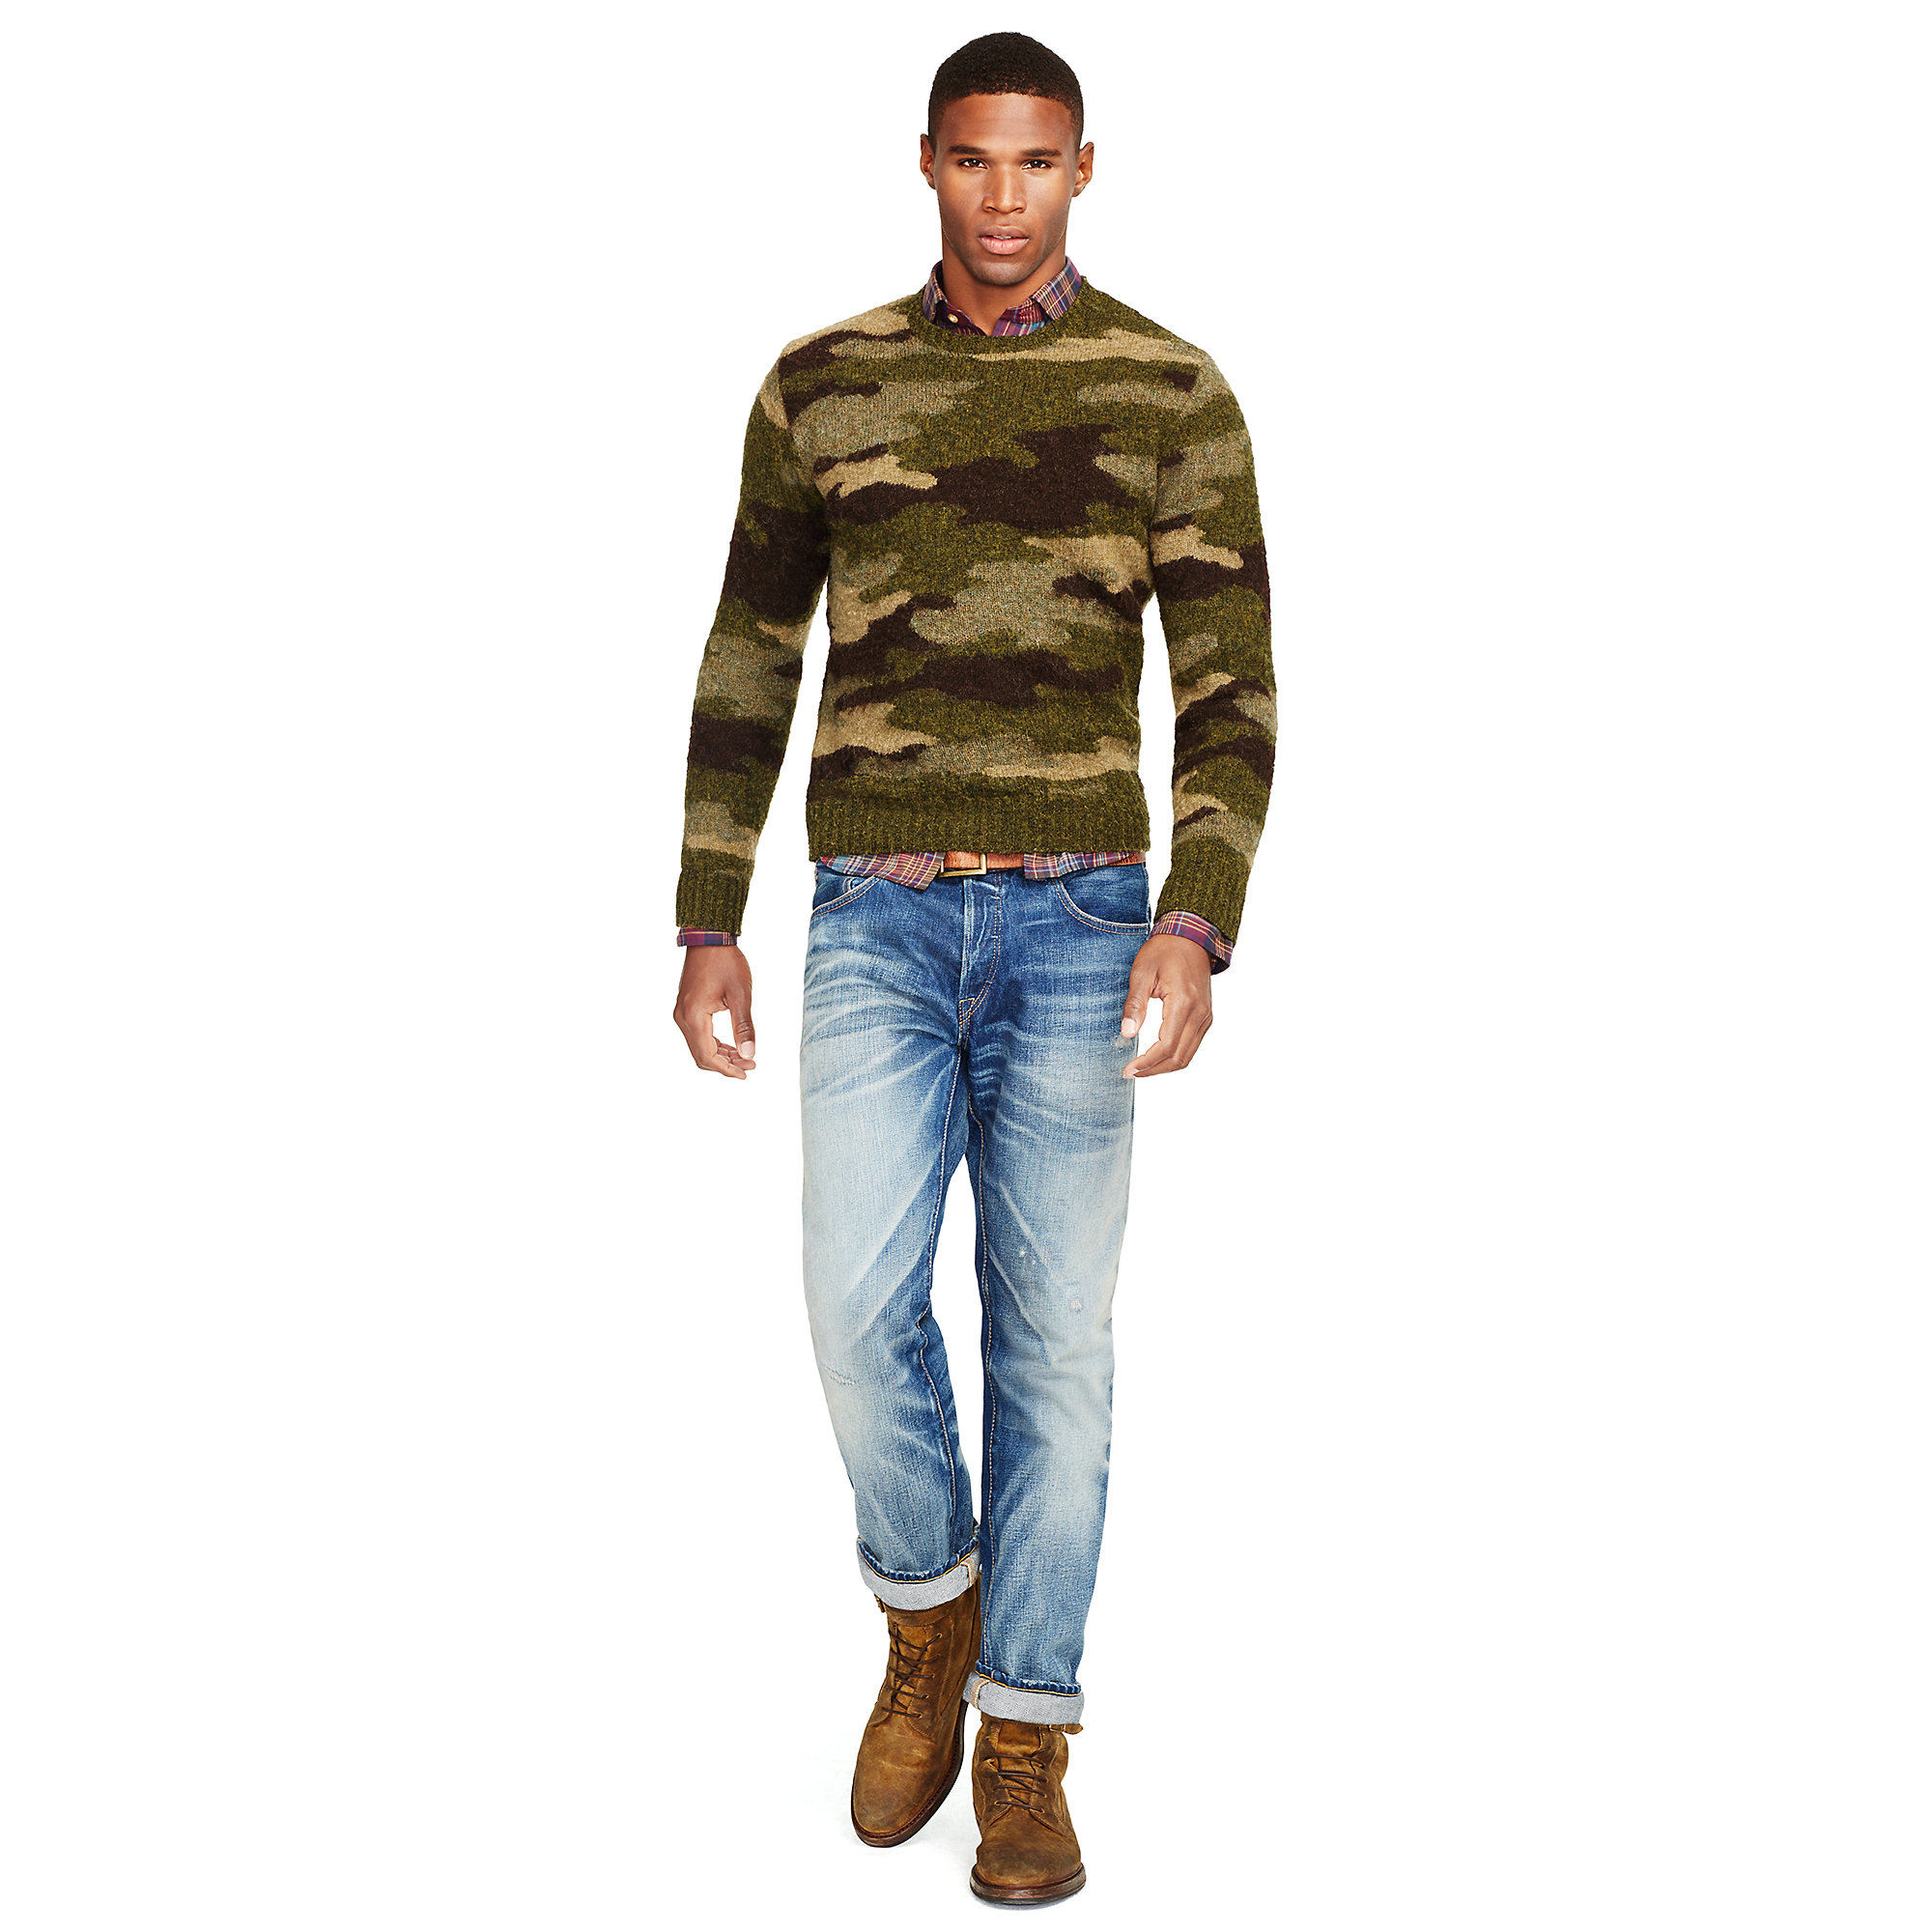 Polo Ralph Lauren. Multicolor Camo Wool Crewneck Sweater